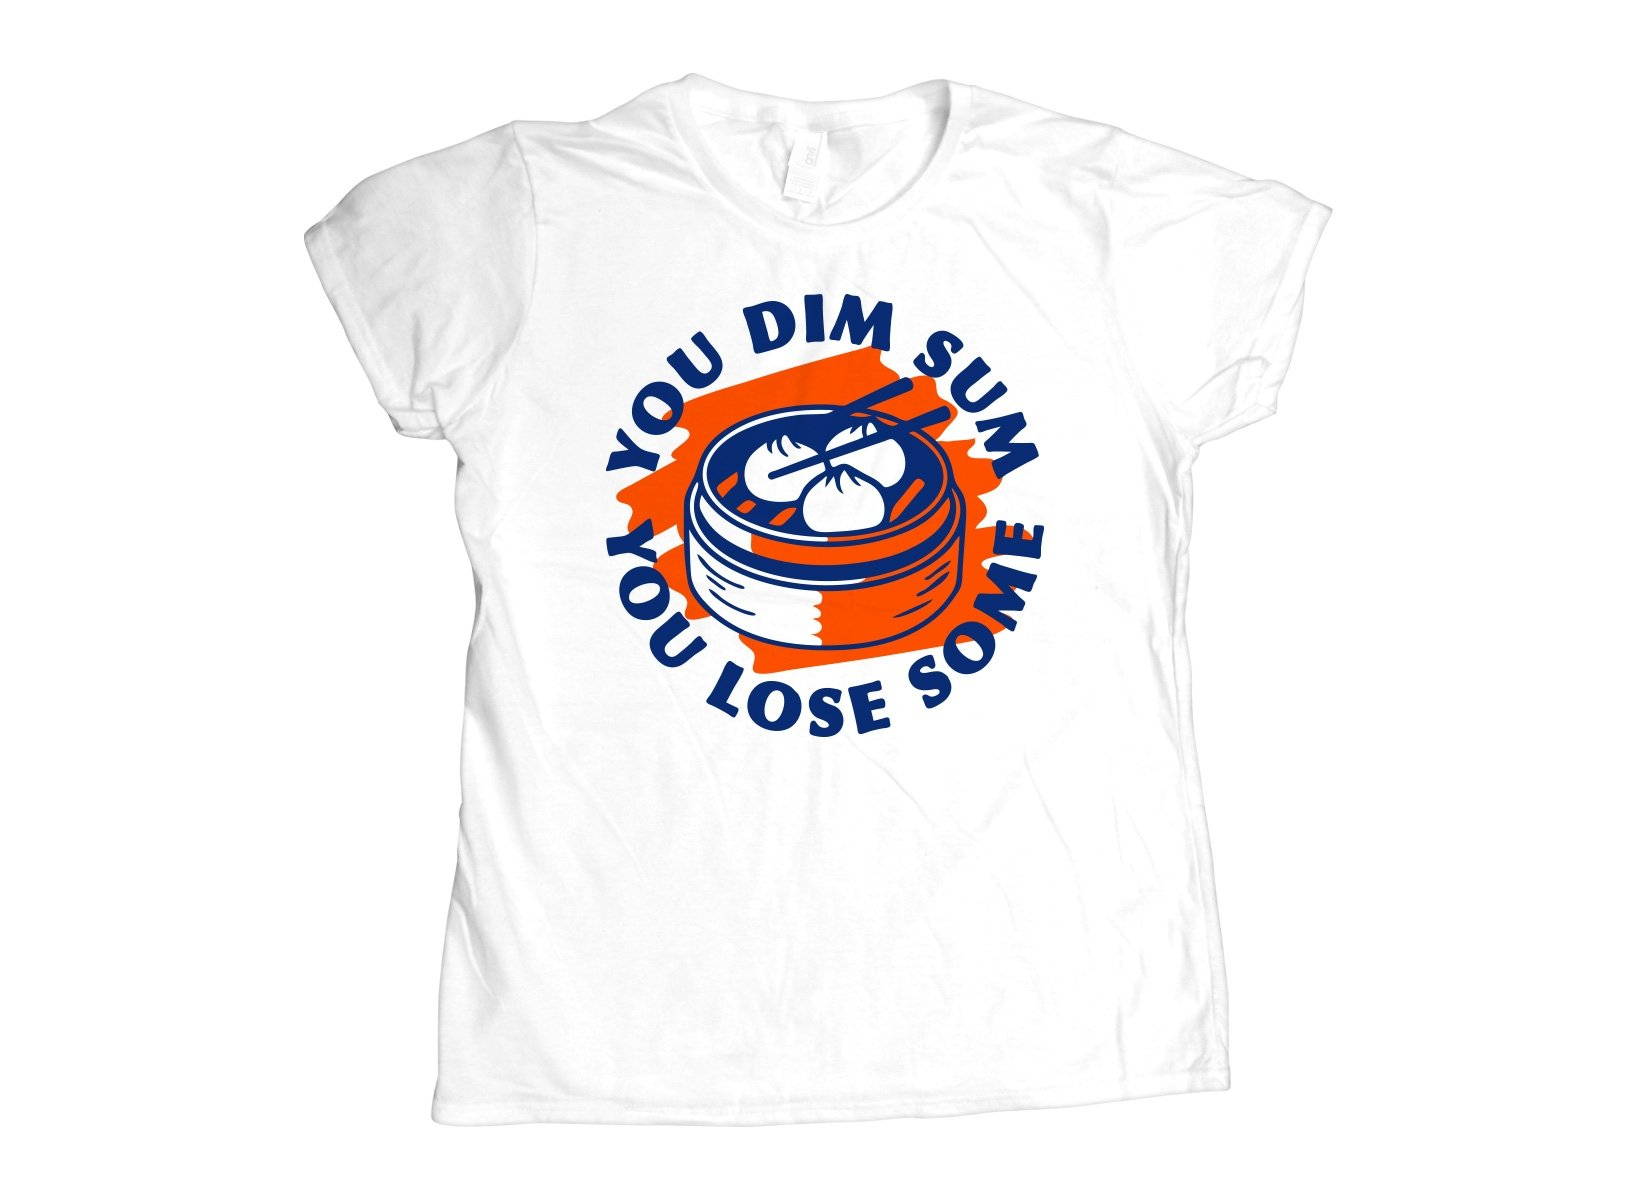 You Dim Sum You Lose Some on Womens T-Shirt